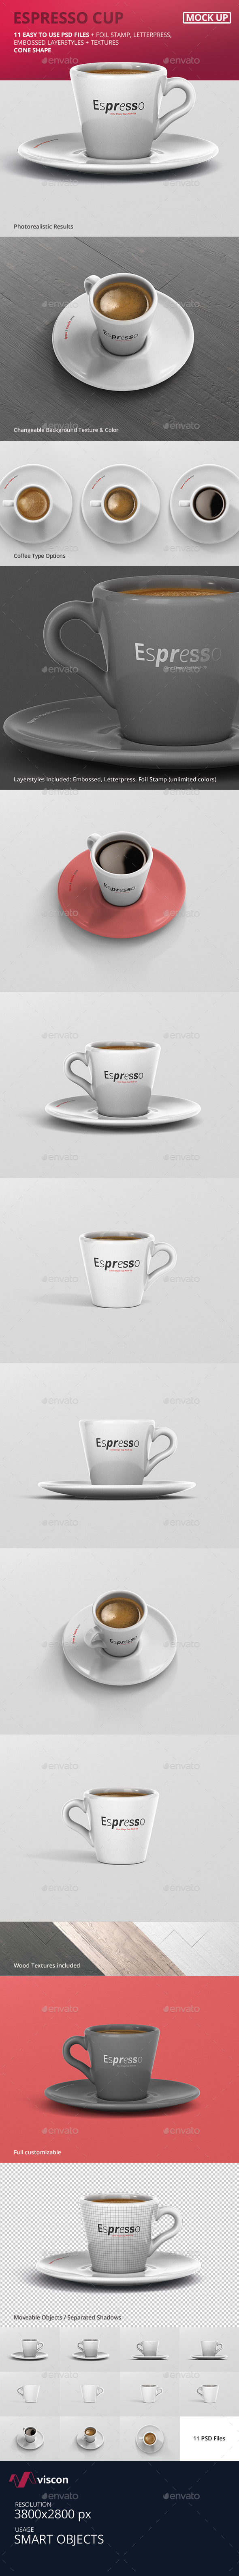 Espresso Cup Mockup - Cone Shape - Food and Drink Packaging